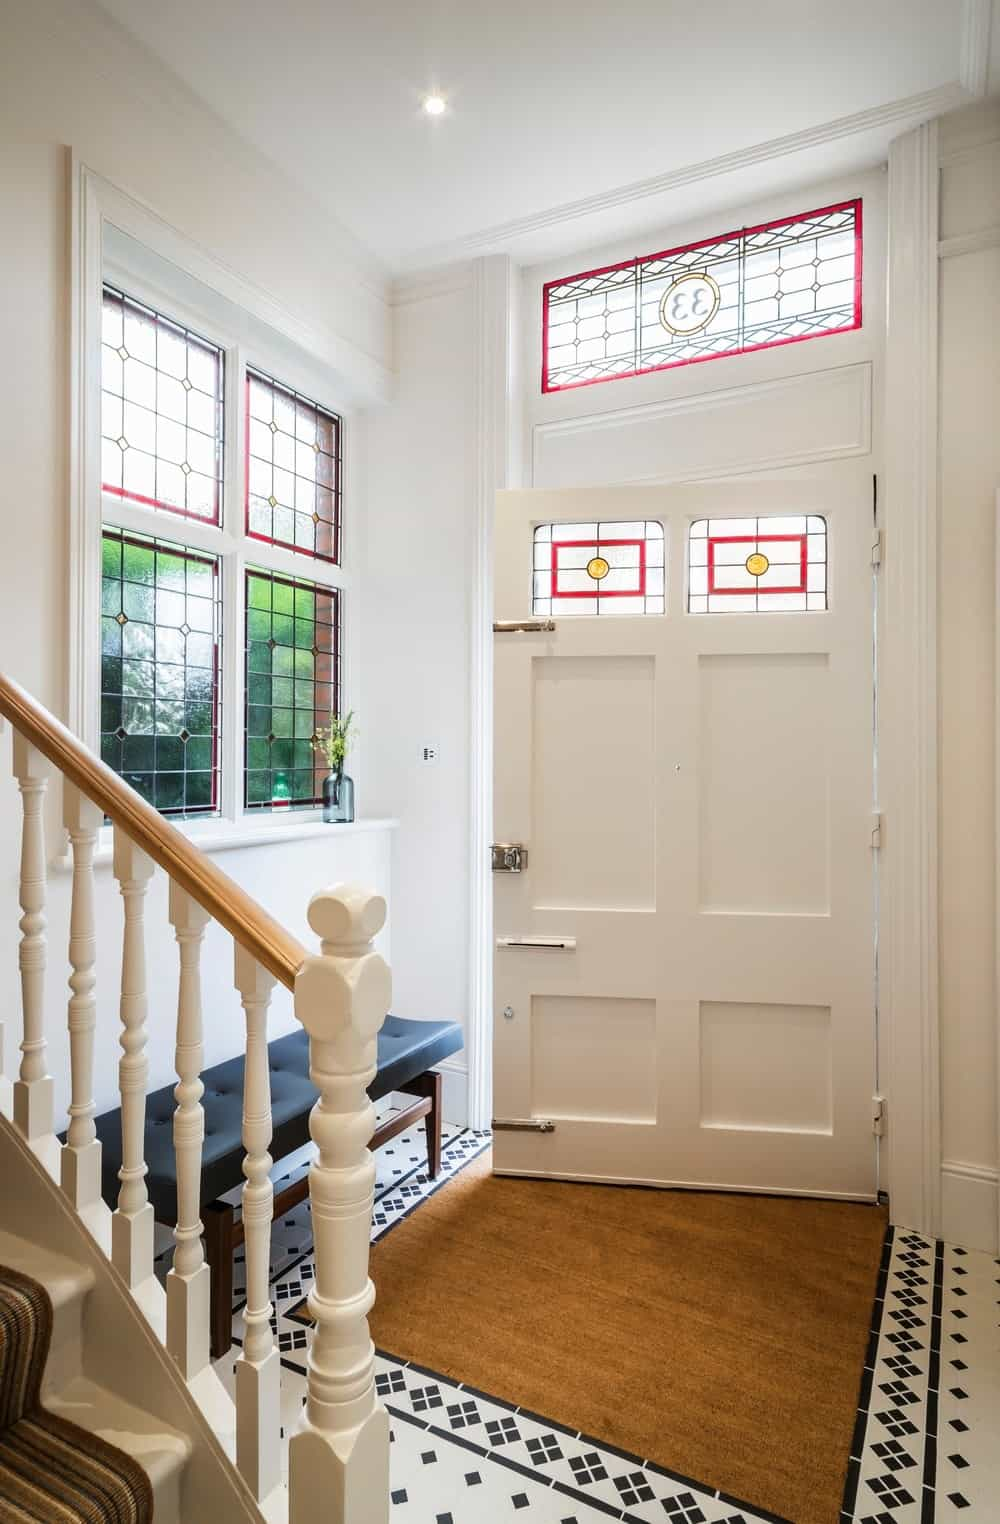 The townhouse entry is surrounded by white walls and leads straight to the staircase. Photo Credit: Rick Mccullagh